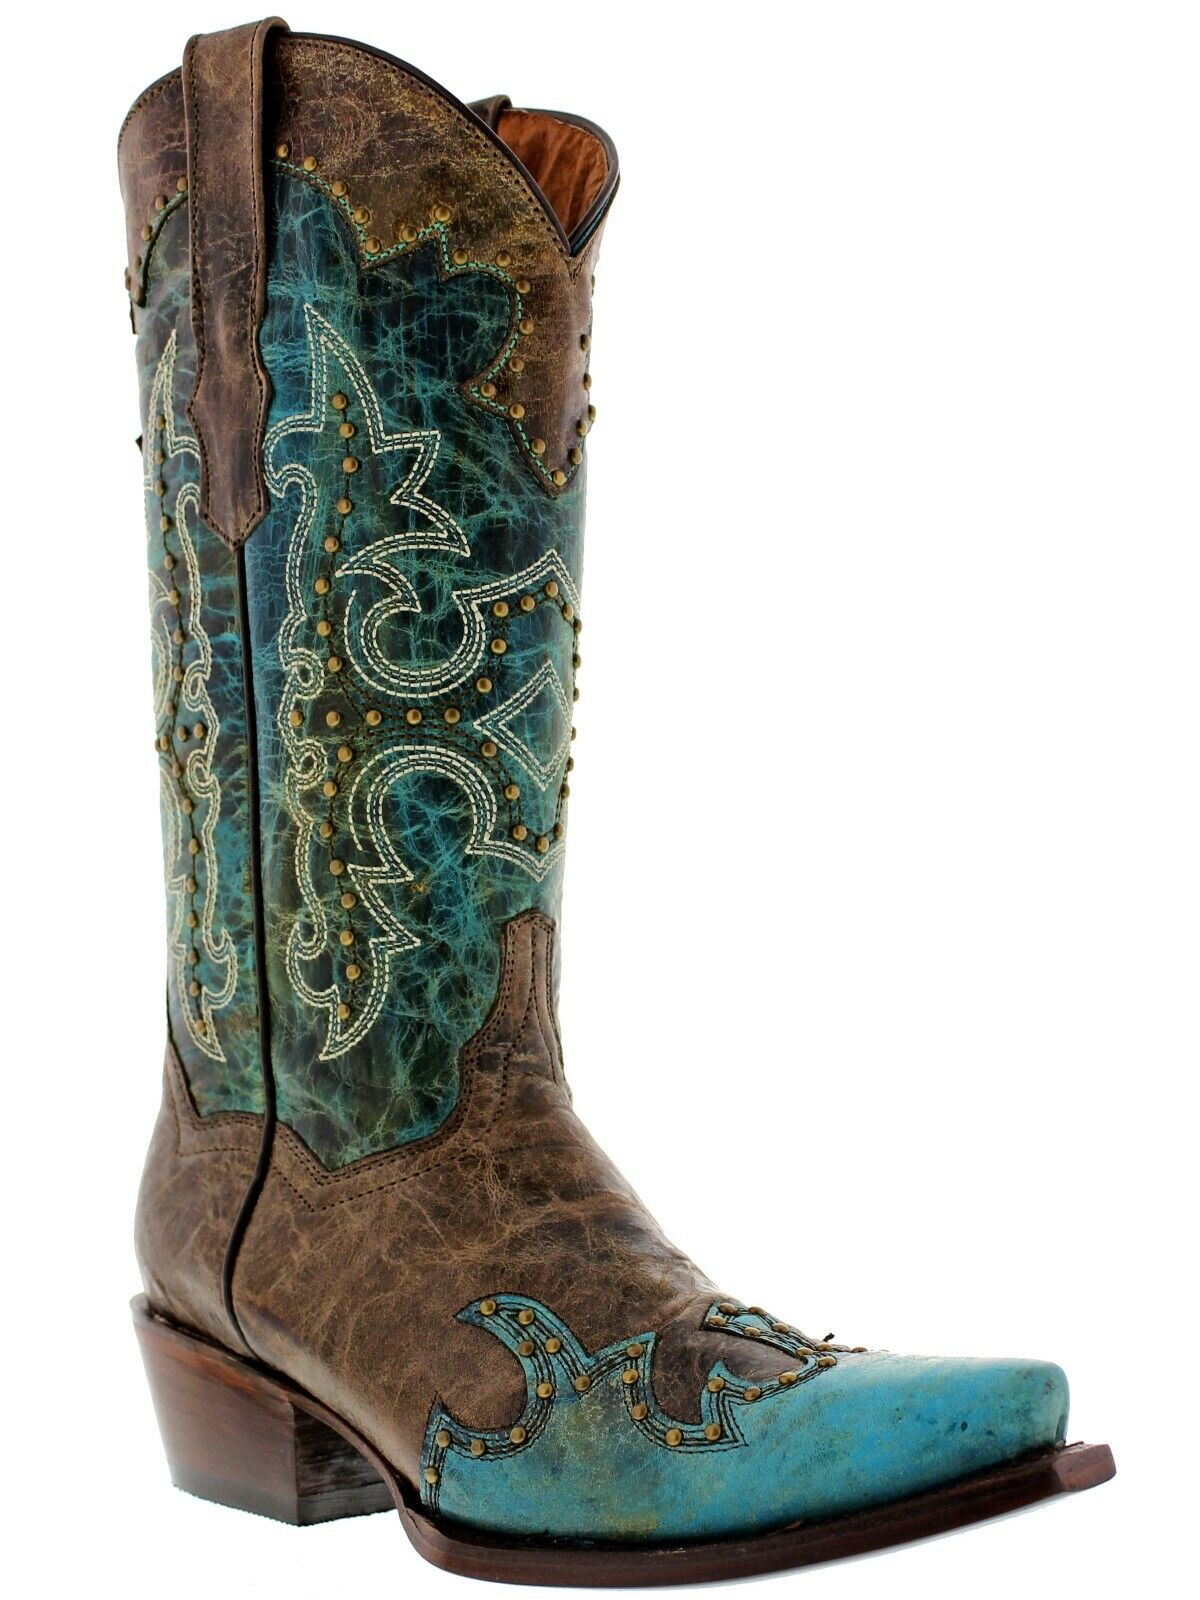 damen Turquoise Studded Cowgirl Leather Western Stiefel Stiefel Stiefel Distressed Snip Toe 25af74